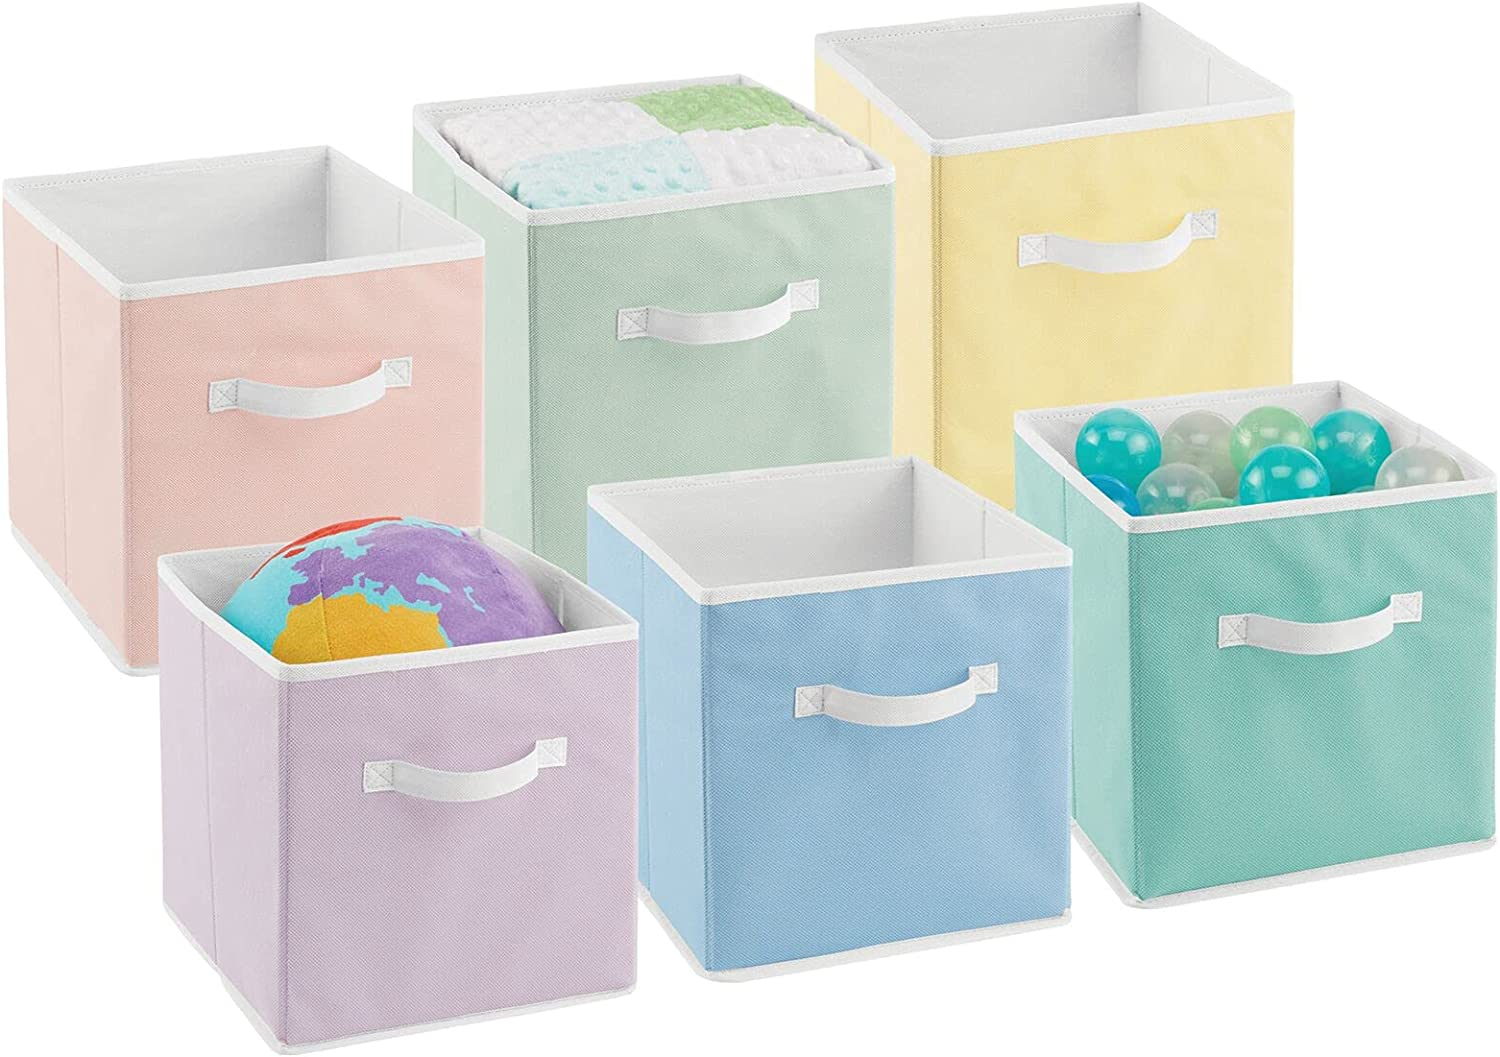 mDesign Soft Fabric Closet Storage Organizer Bin Box - Front Handle, for Cube Furniture Shelving Units Bedroom, Nursery, Toy Room - Textured Print - Small, 6 Pack - Bright Multicolored